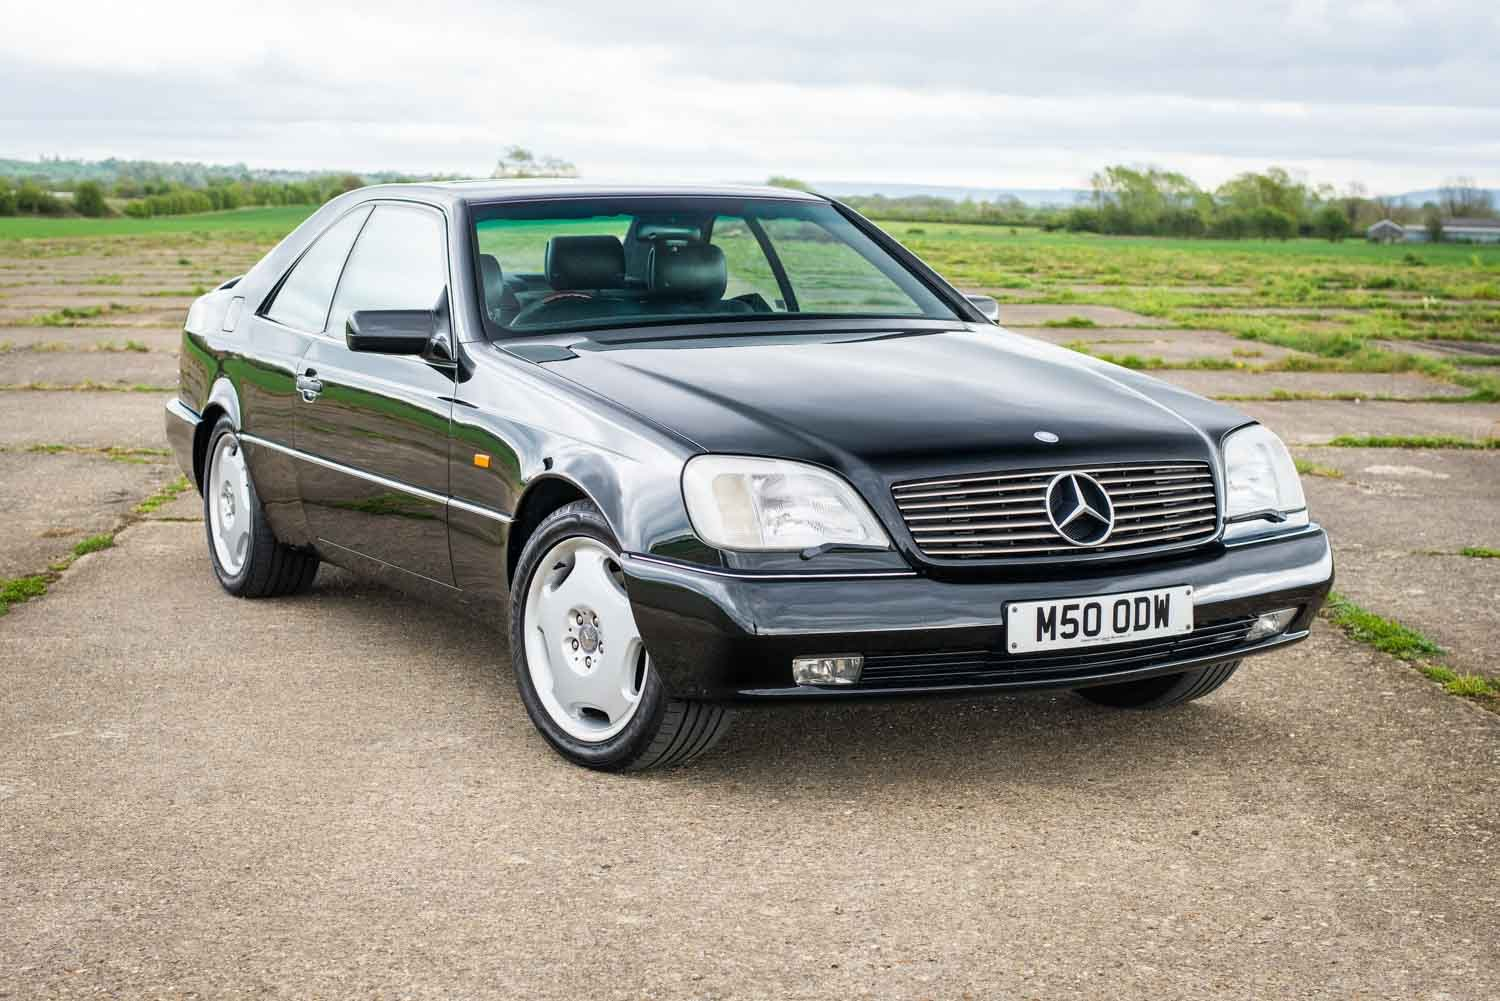 1995 Mercedes-Benz W140 S500 Coupe - 95K - 3 Owners - Lorinser SOLD (picture 1 of 6)